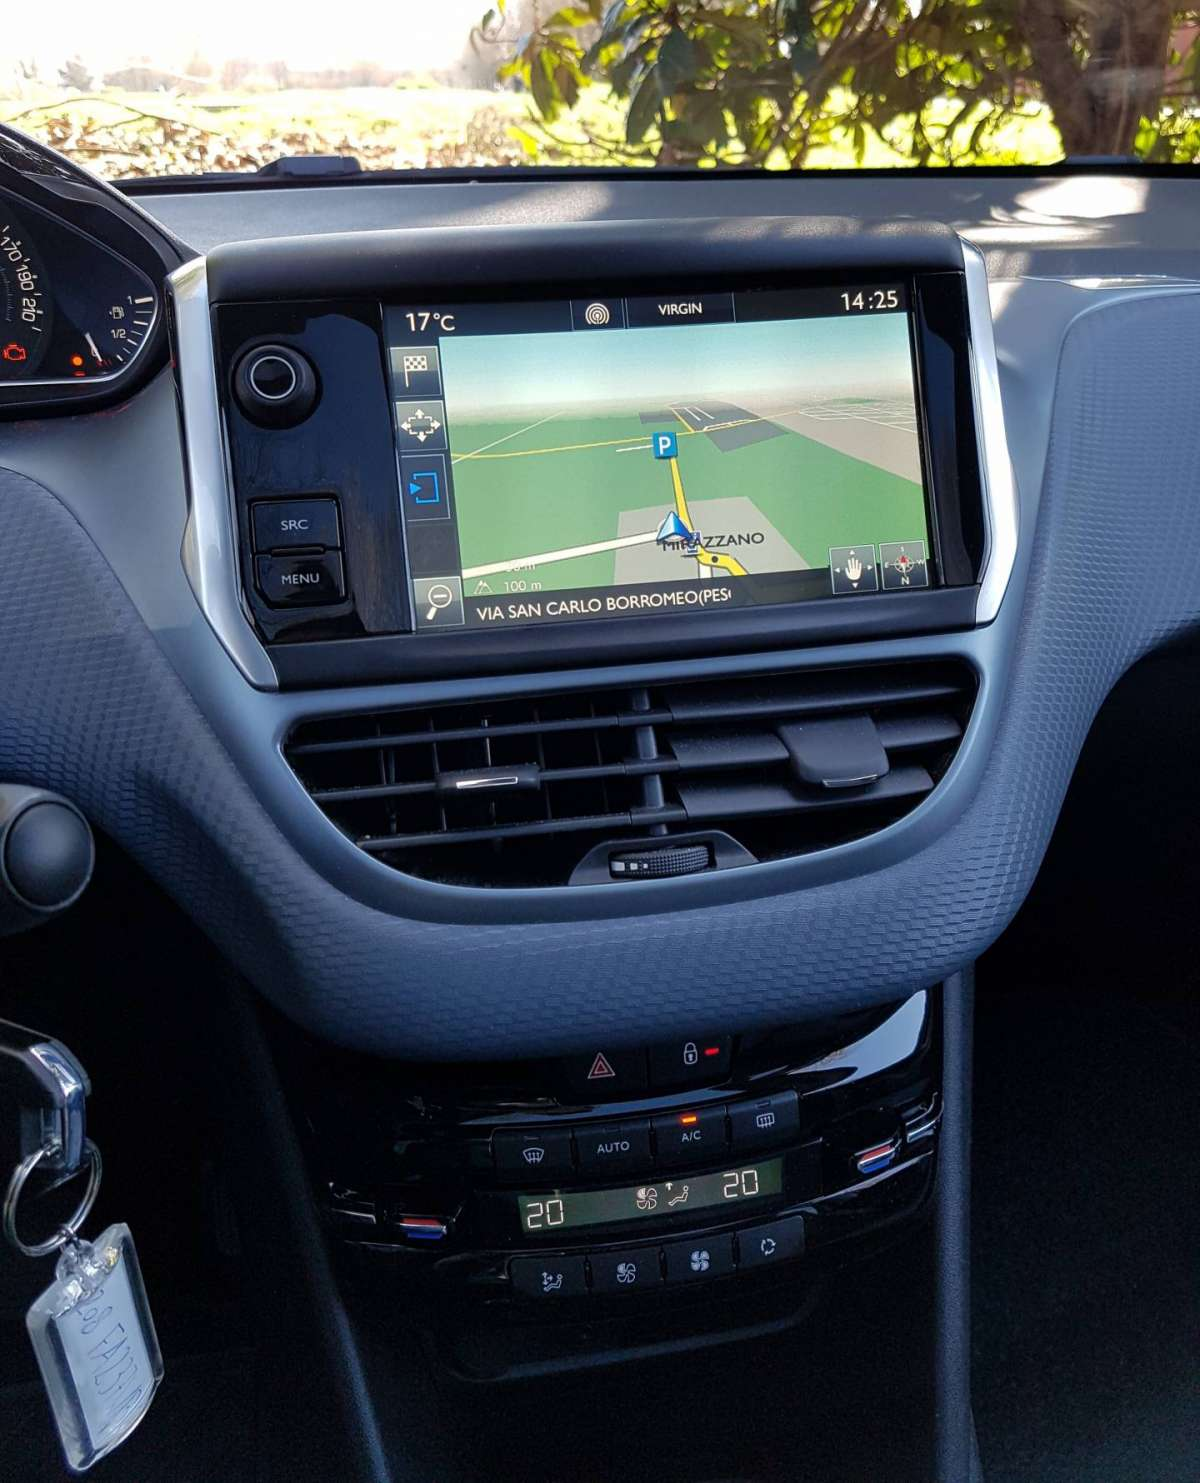 Peugeot 208 1.2 automatica, touch screen